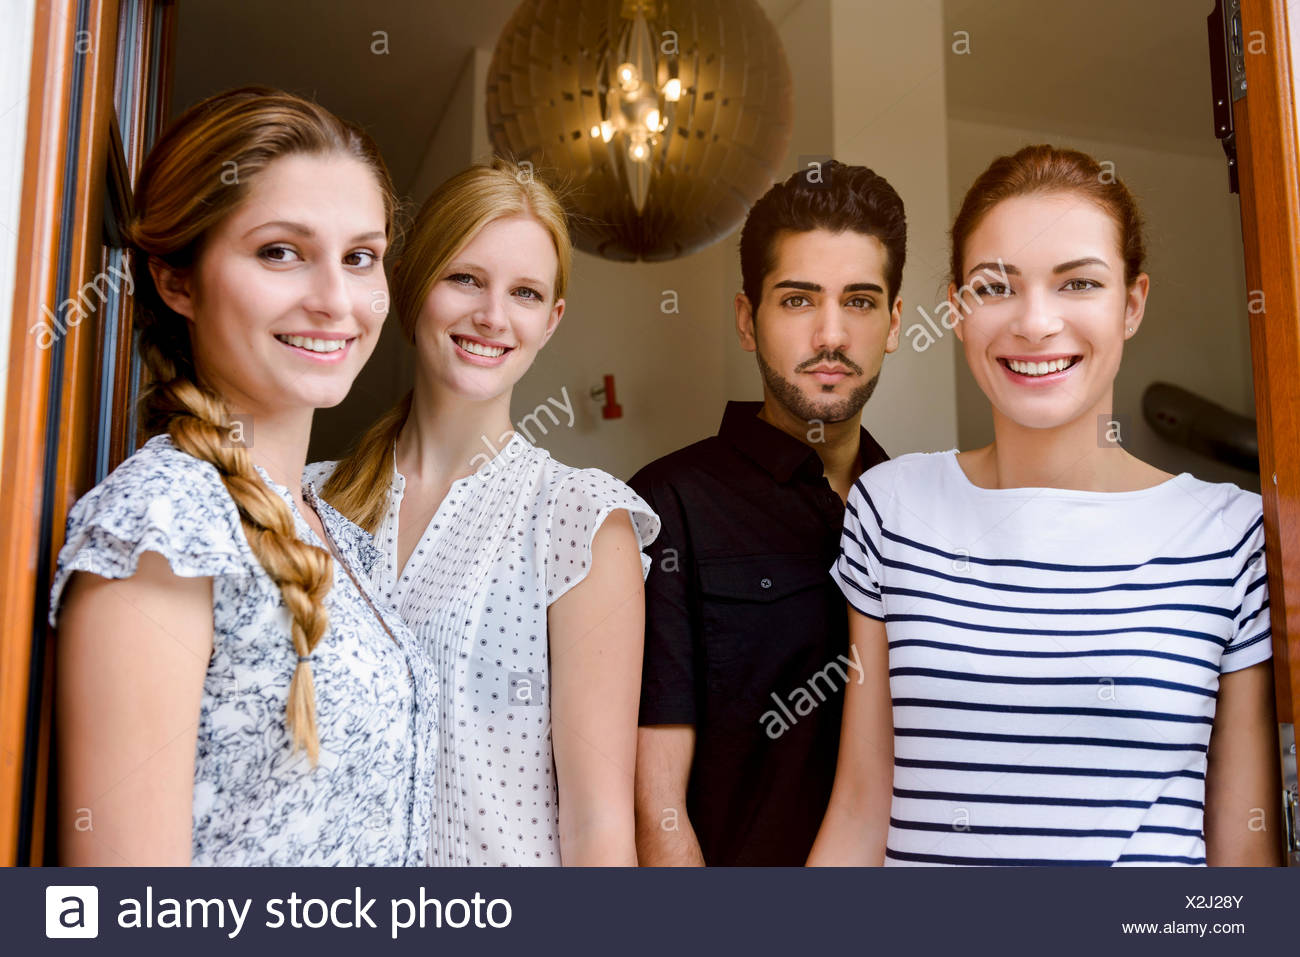 Four people looking at camera, portrait - Stock Image